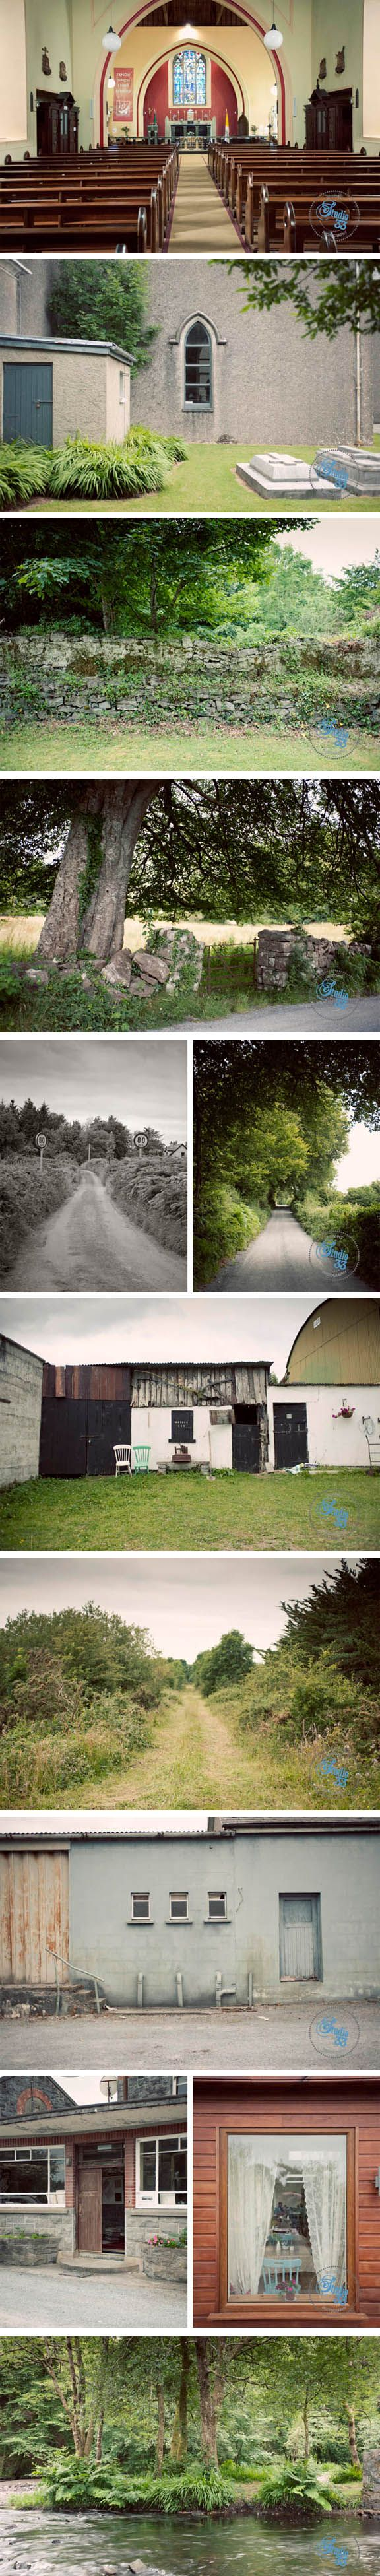 Wedding locations for Galway. 81 best Ouside Yard Design images on Pinterest   Yard design  Farm